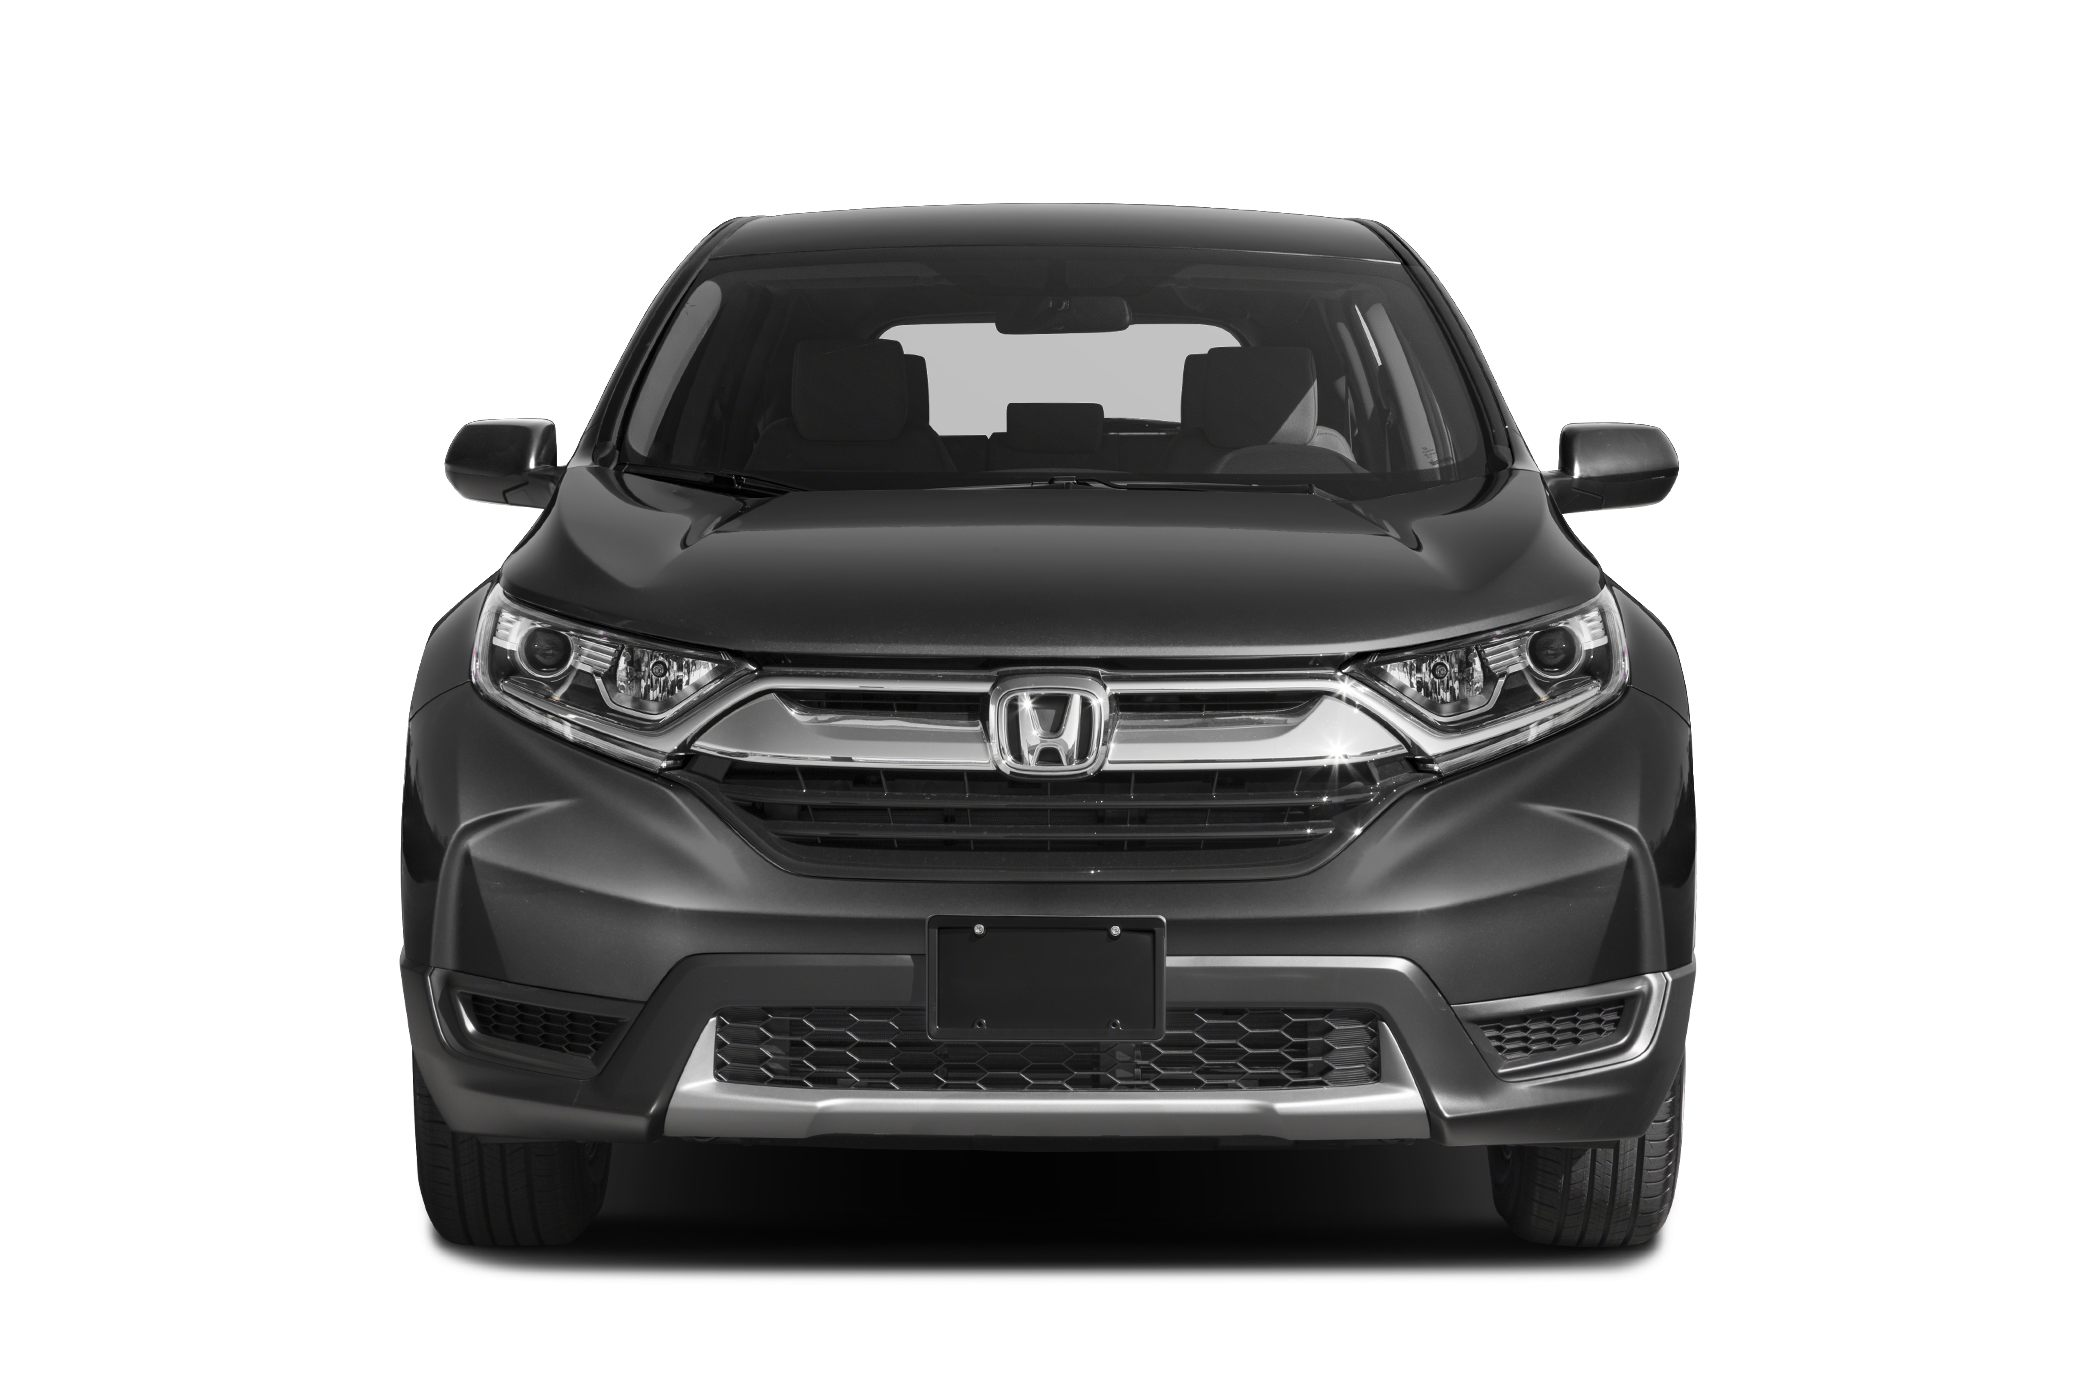 2017 Honda CR-V Styles & Features Highlights